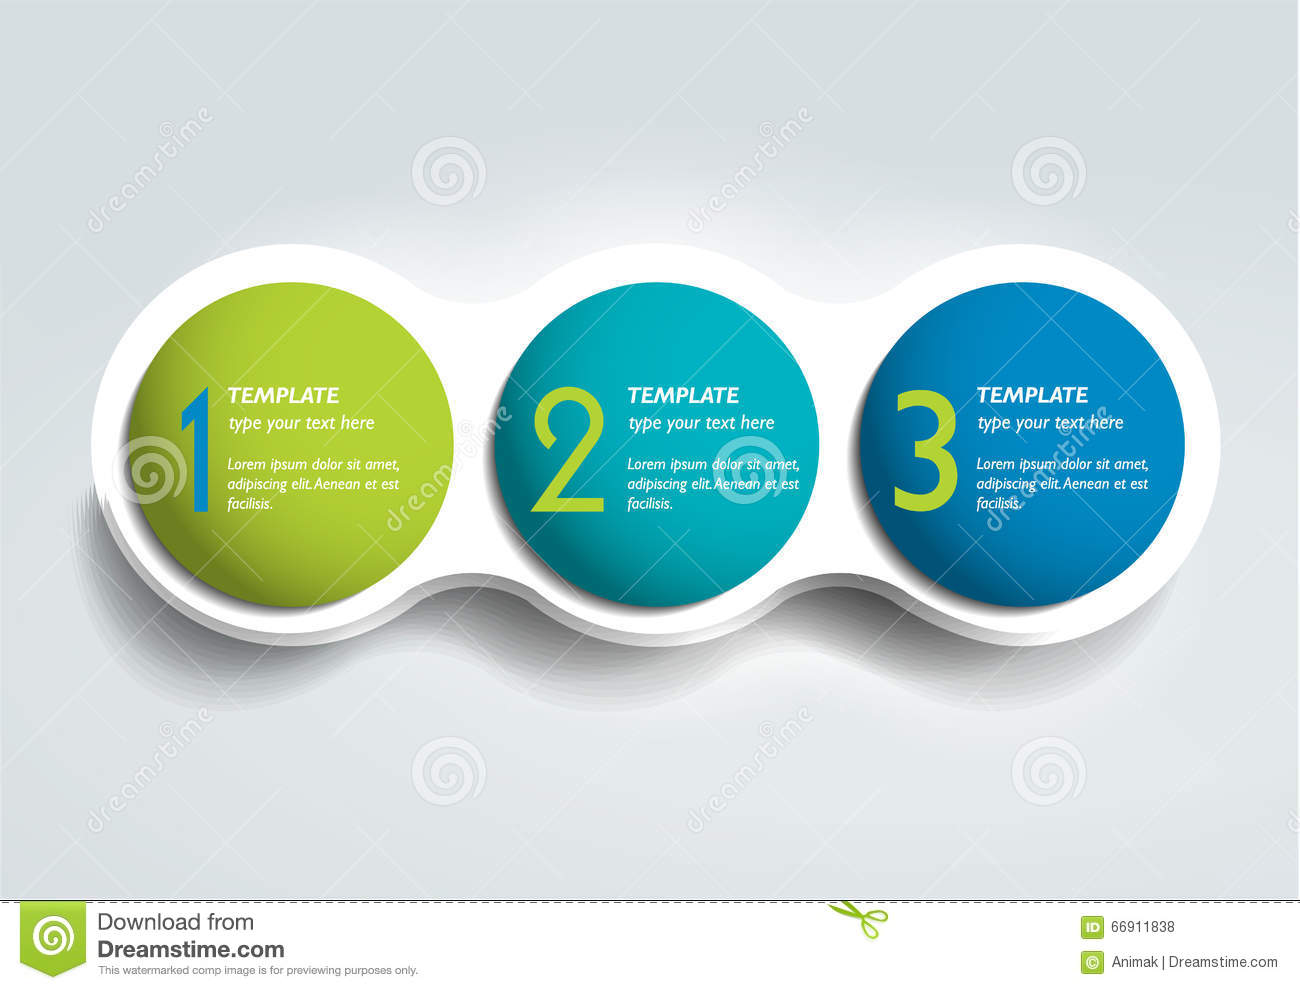 Powerpoint bubble chart template mandegarfo powerpoint bubble chart template ccuart Choice Image